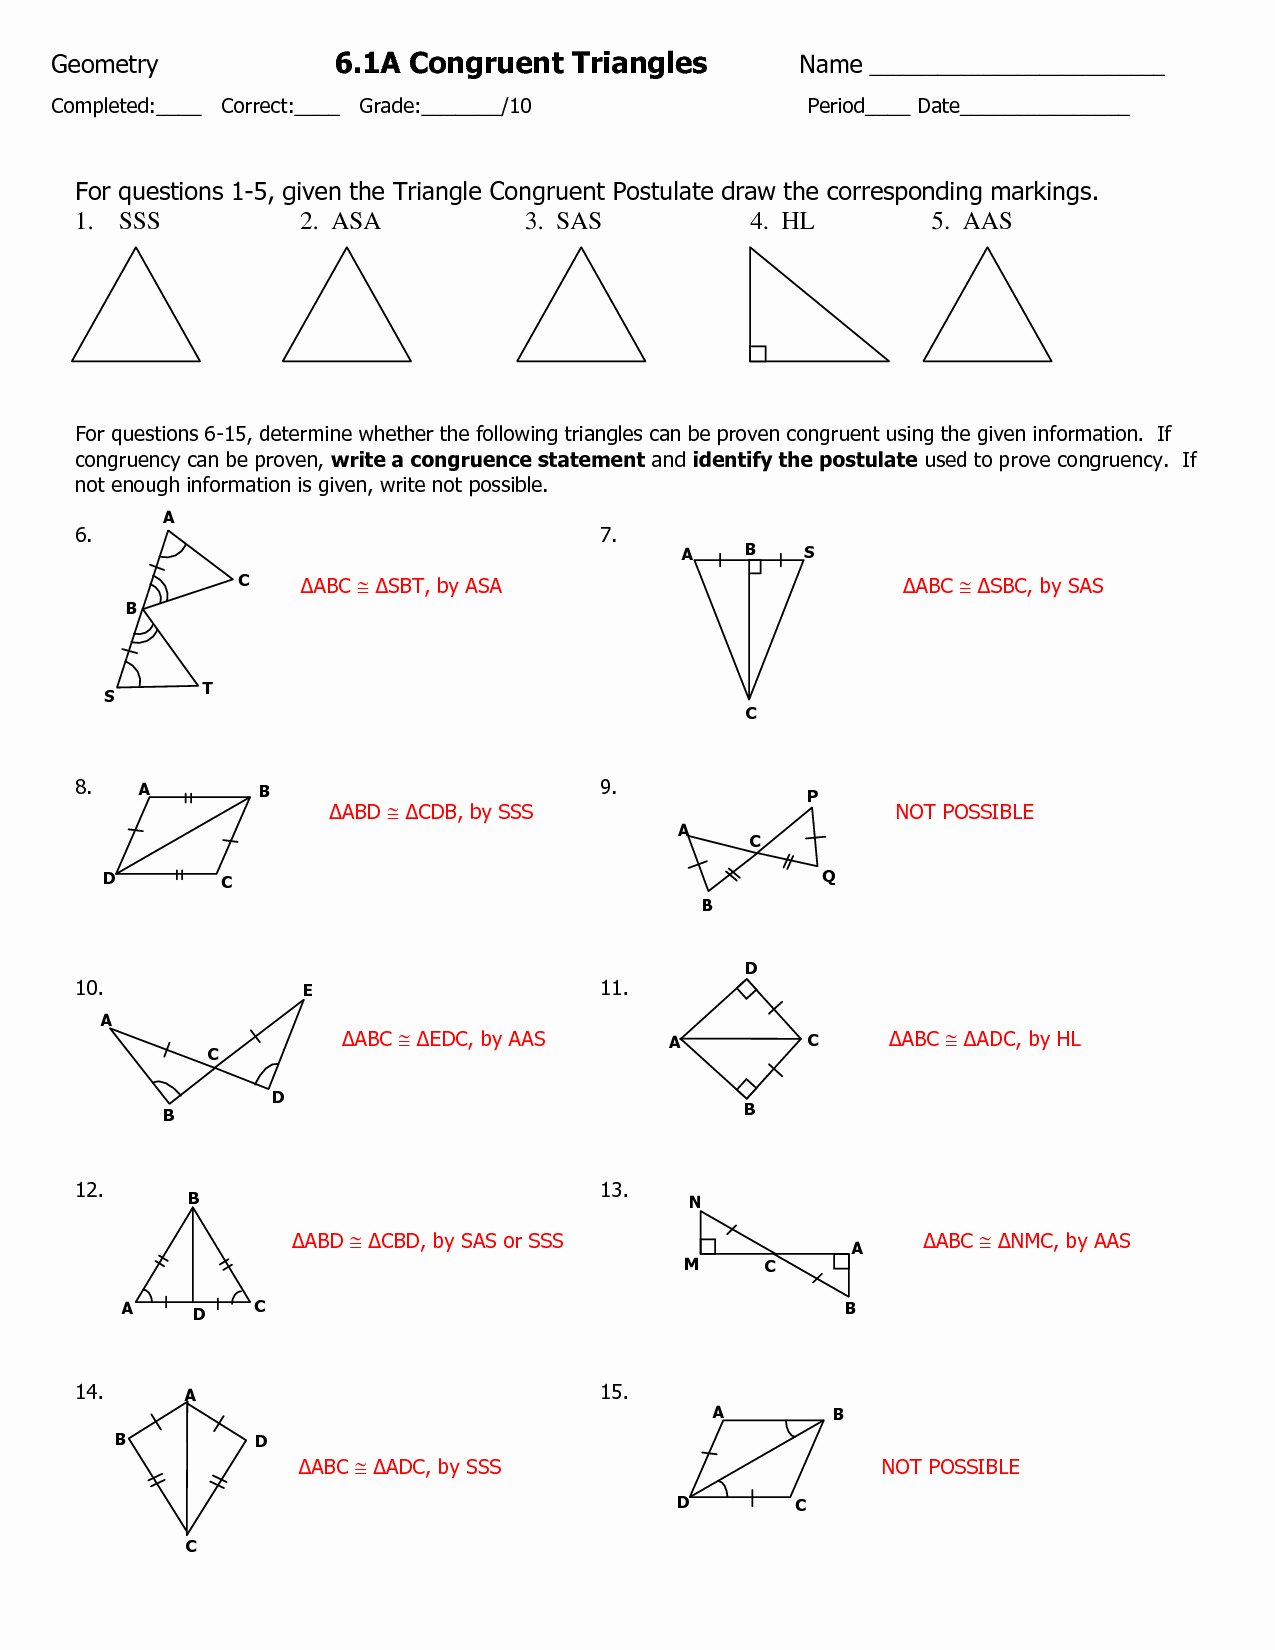 Triangle Congruence Worksheet Pdf Inspirational Triangle Congruence Worksheet Google Search